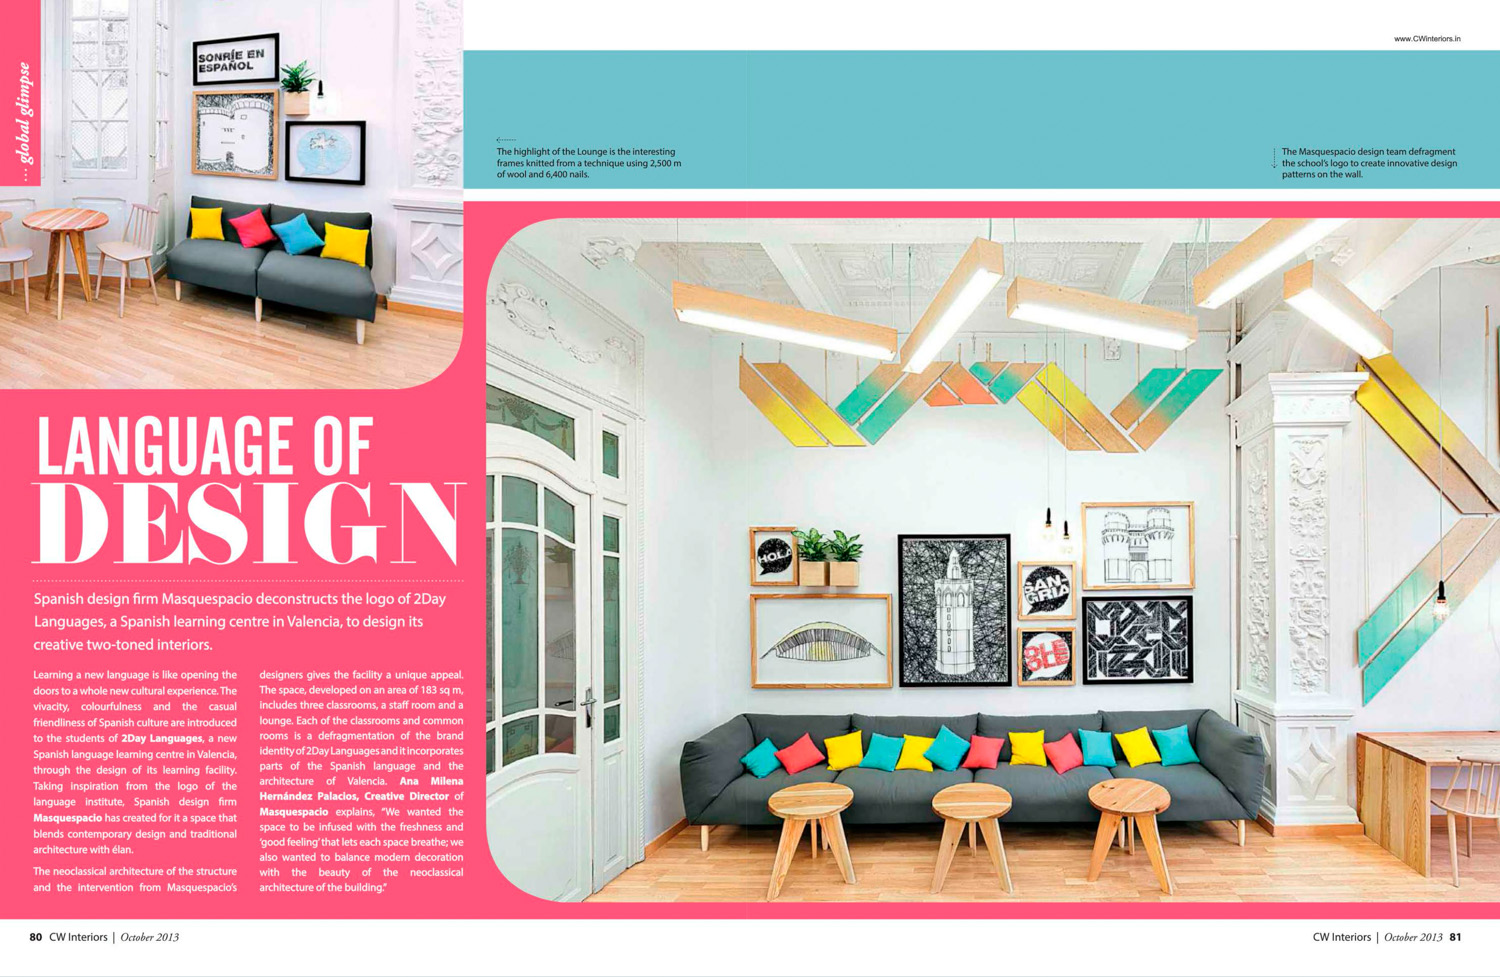 cw-interiors_india_cualiti-photo-studio_portada_2day-languages_1